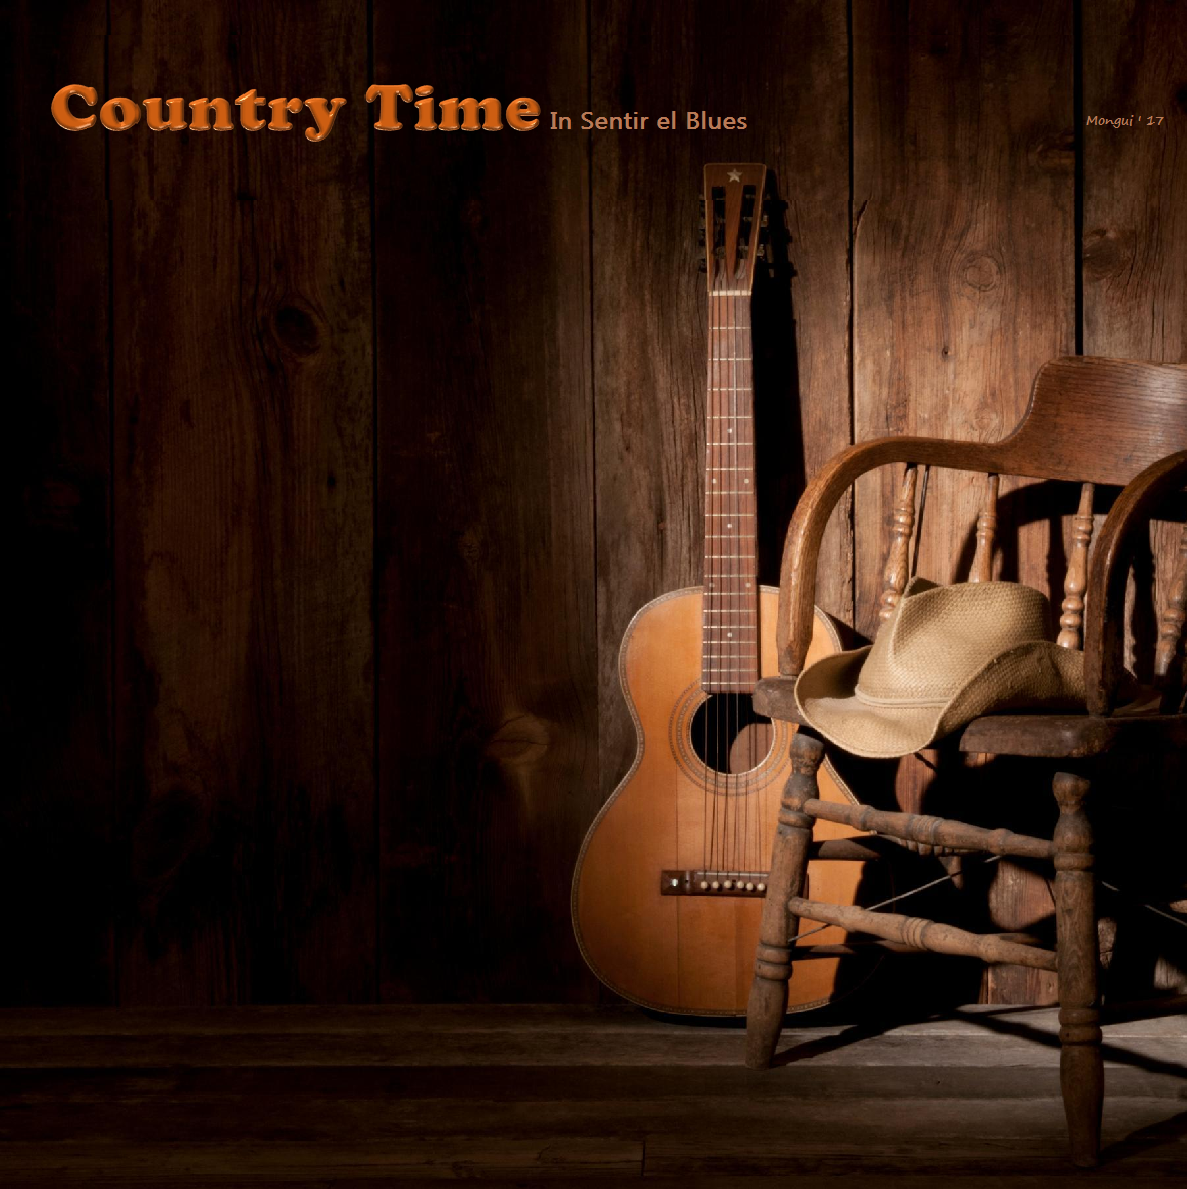 COUNTRY TIME In Sentir el Blues